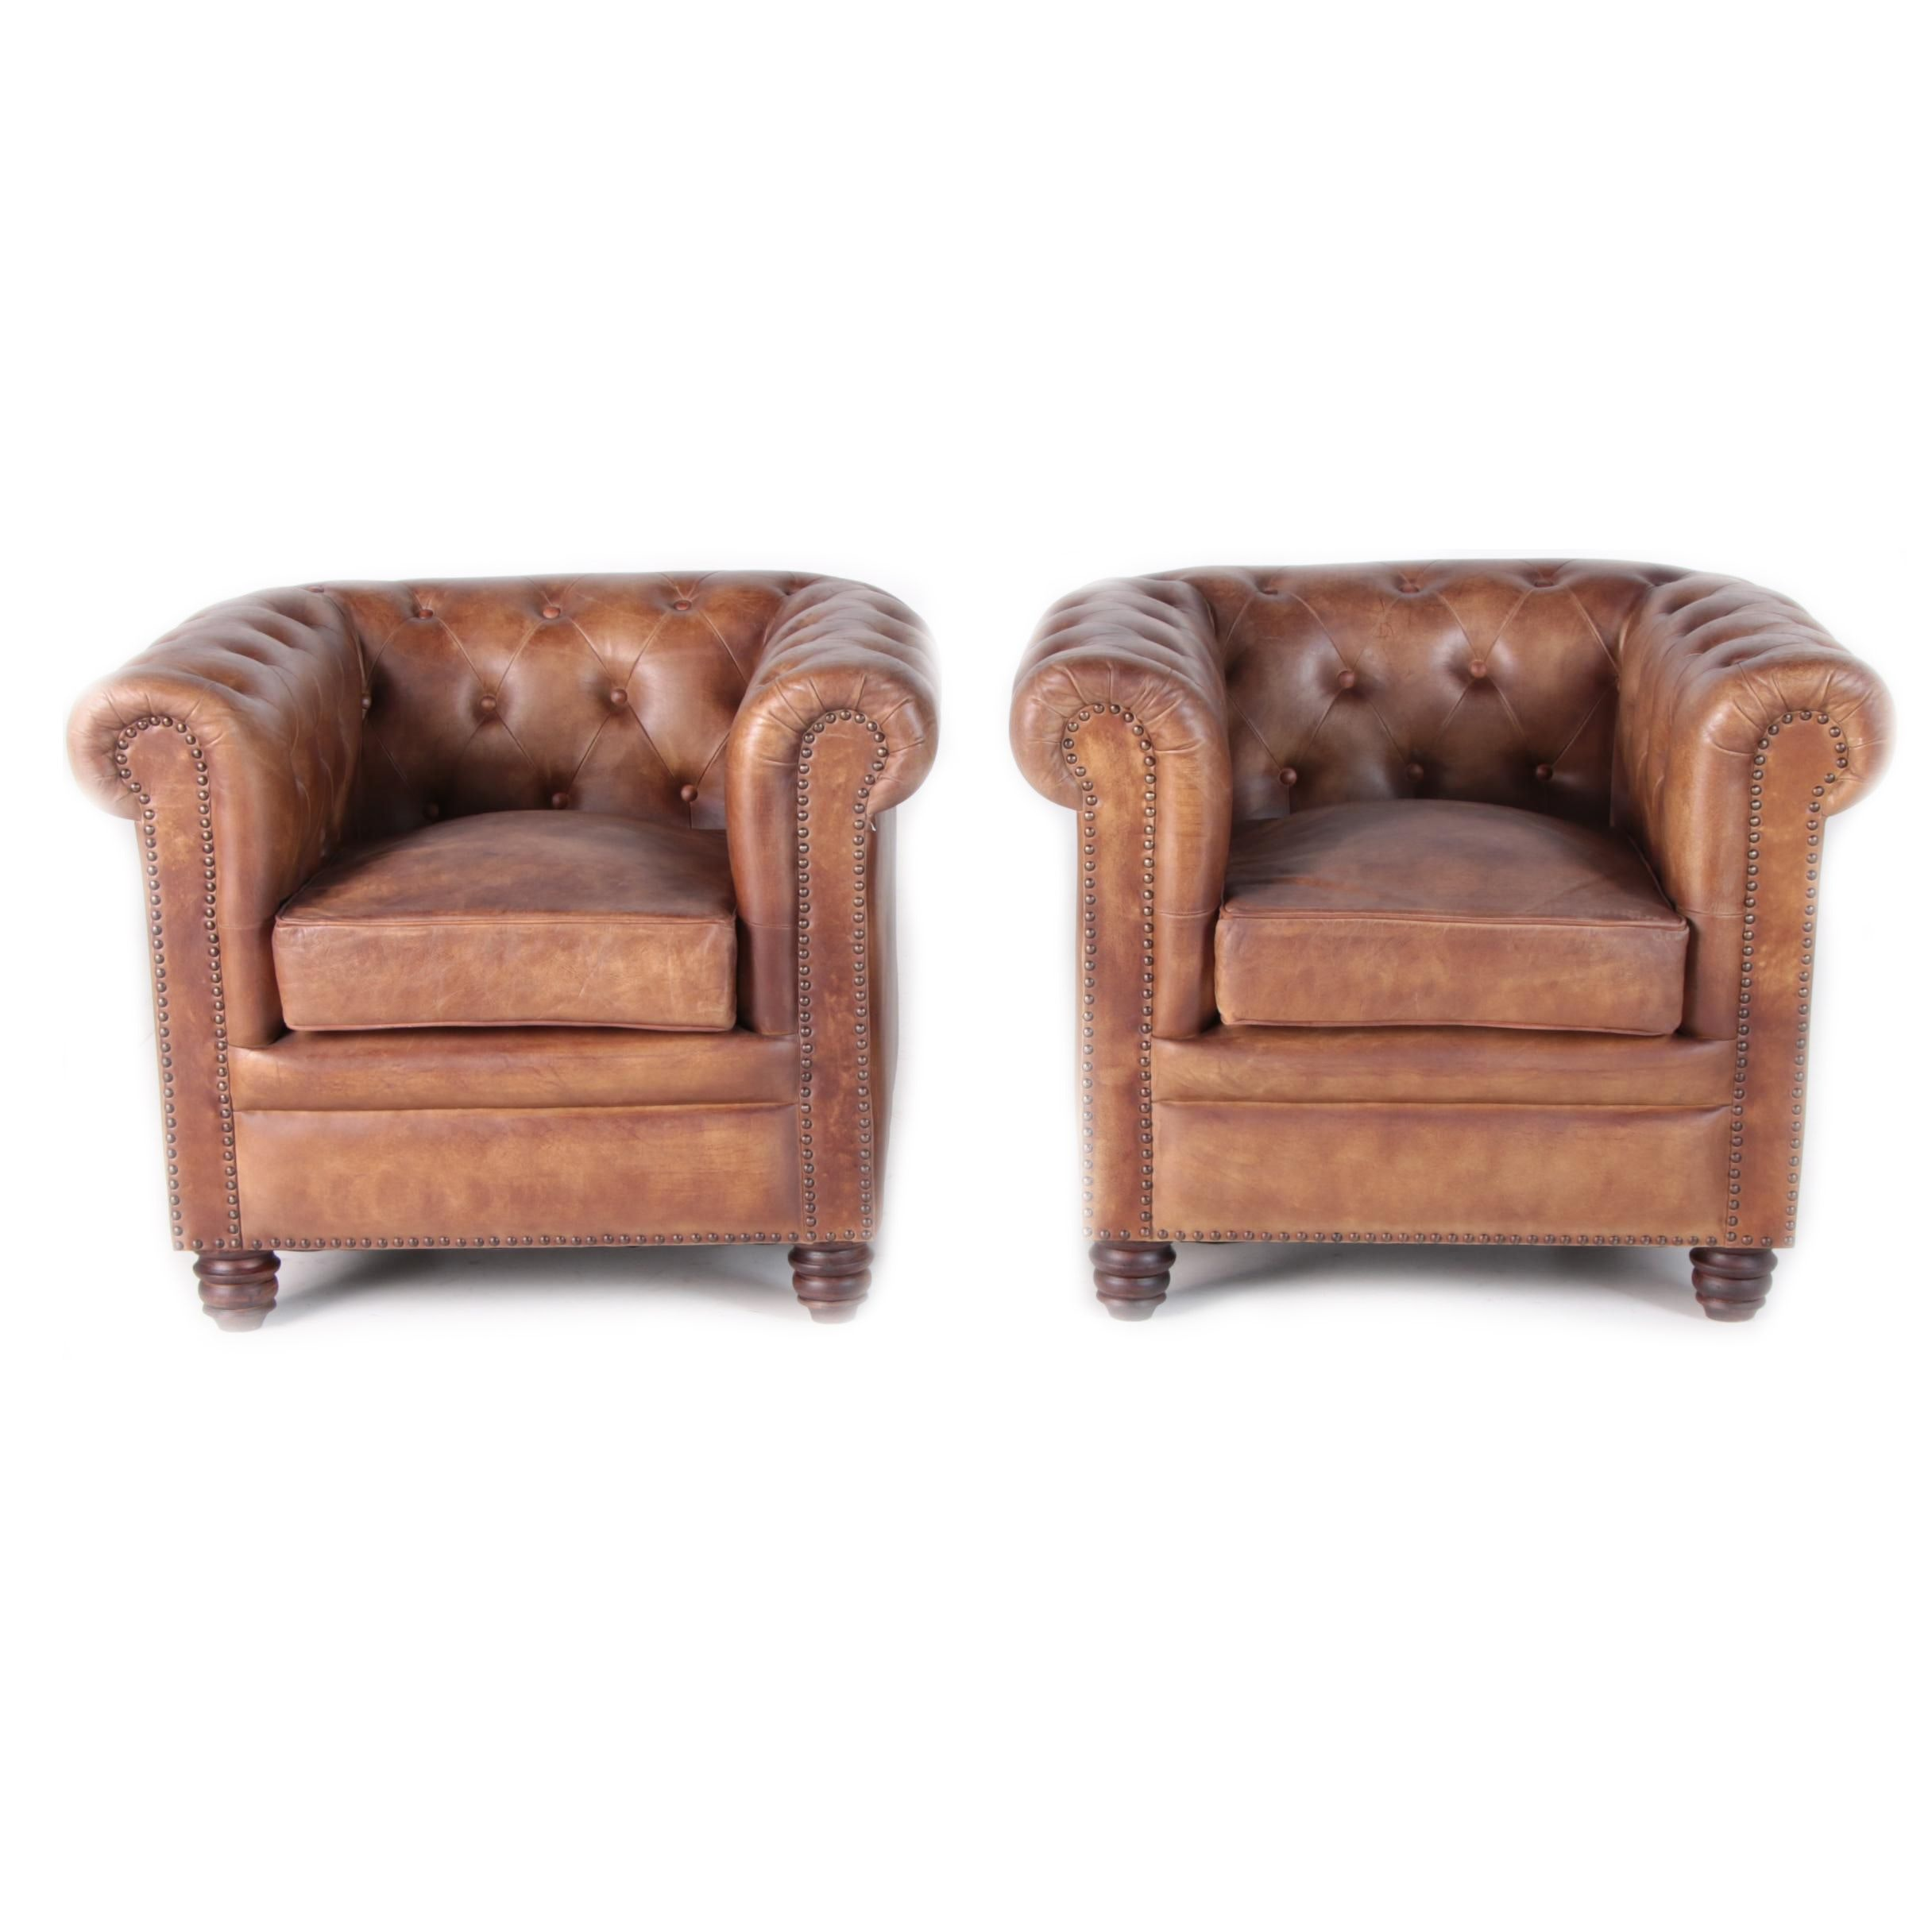 """Norwood"" Button Tufted Leather Club Chairs, 21st Century"